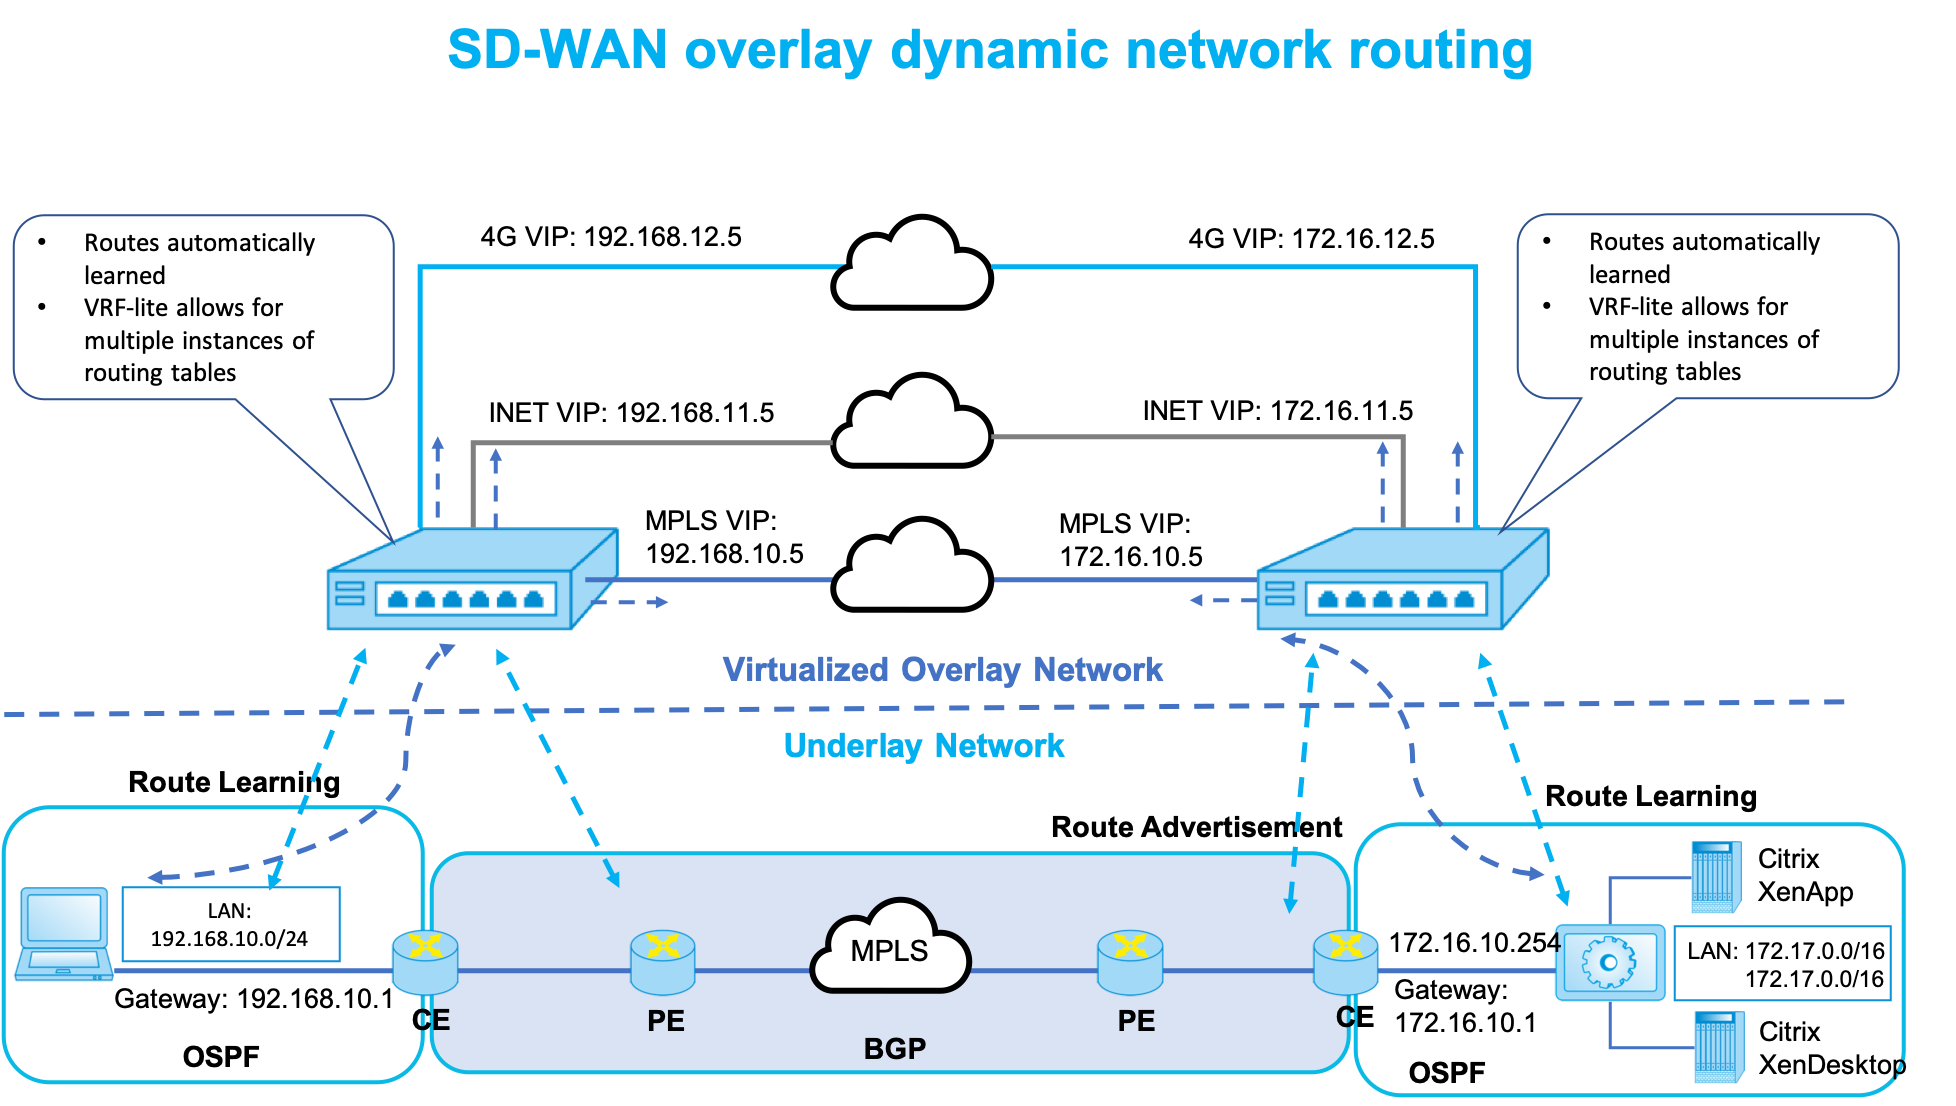 SD-WAN dynamic routing